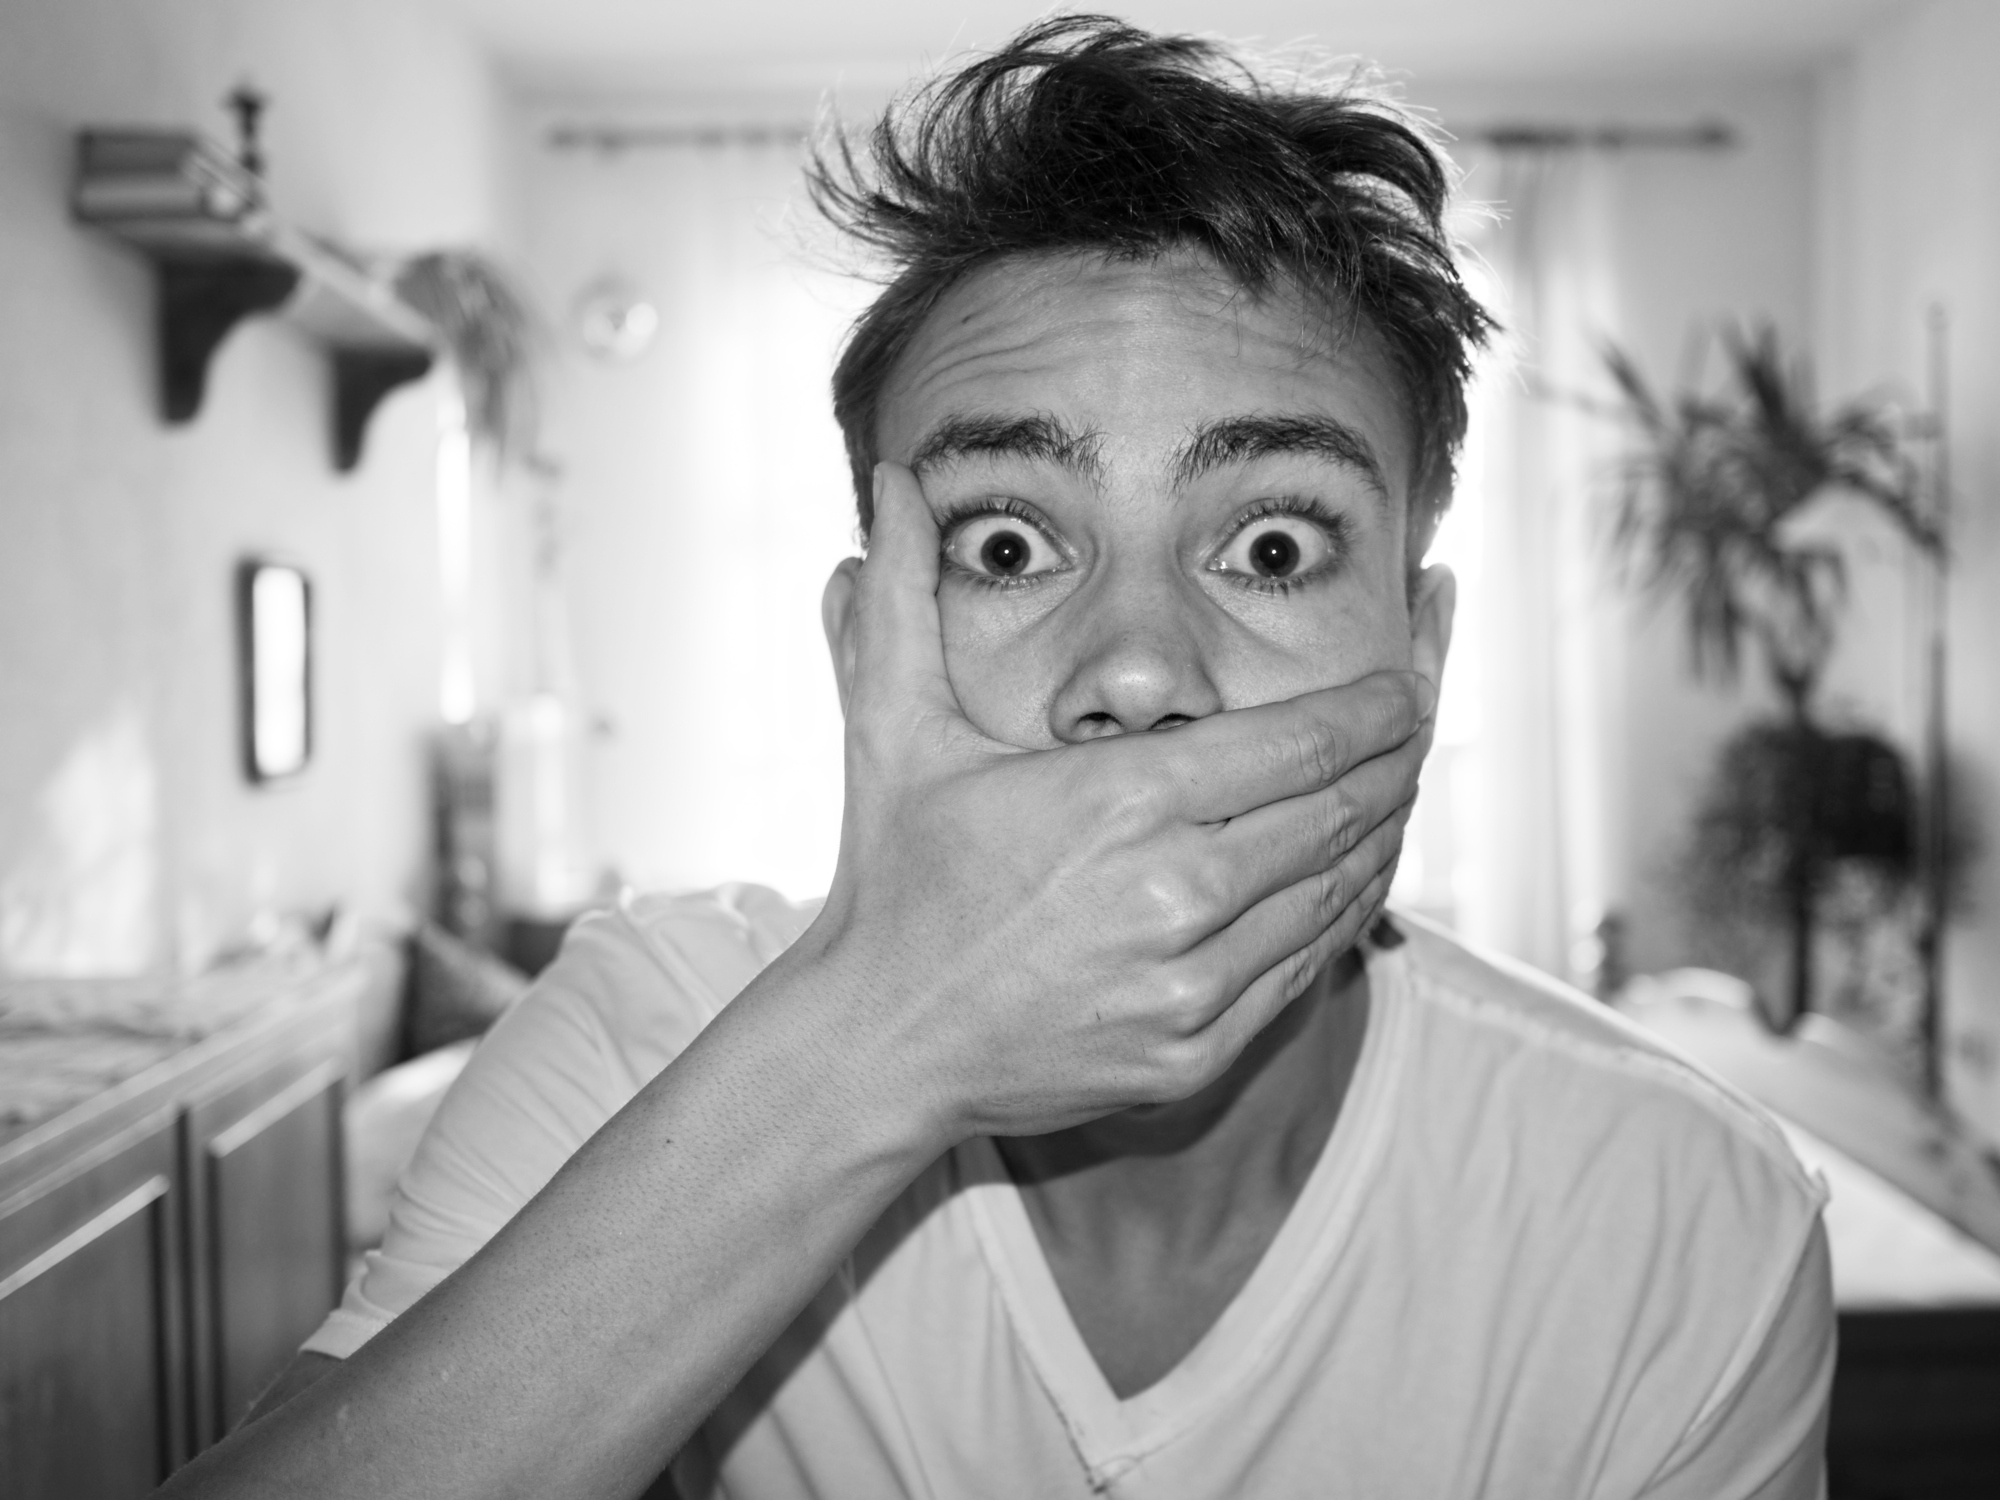 Portrait Of Shocked Man Covering Mouth At Home